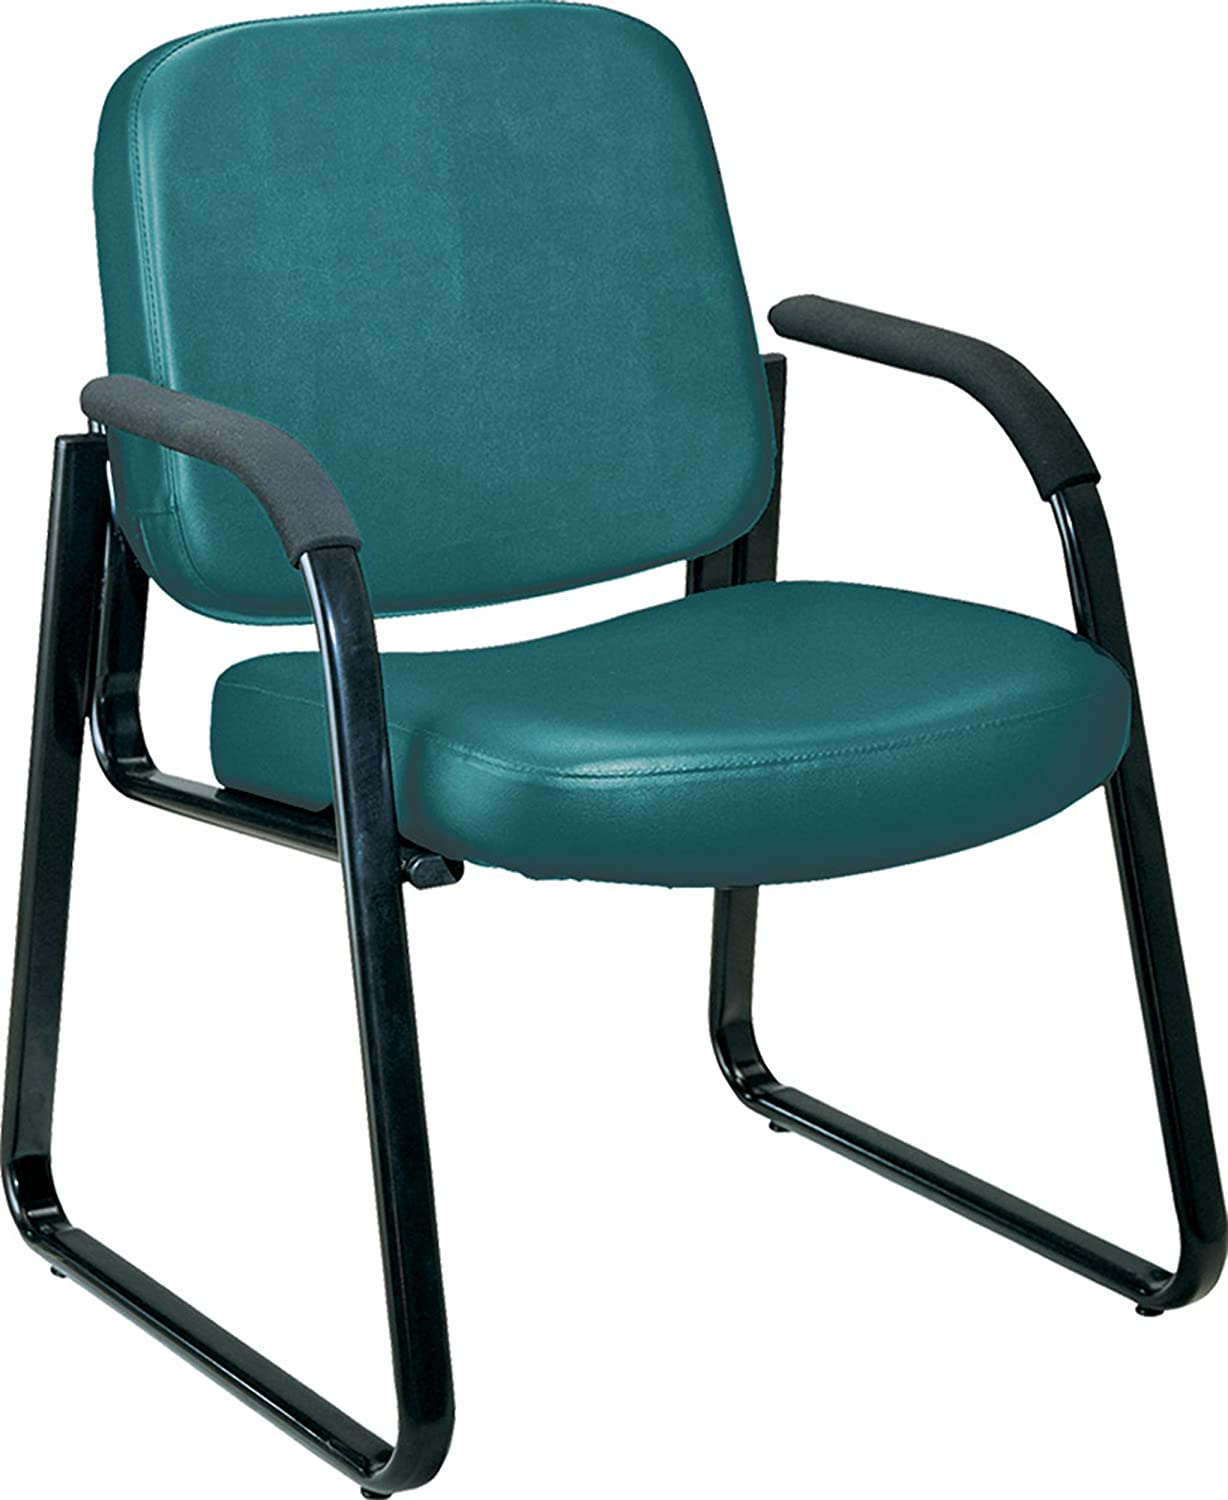 Amazon.com: OFM Vinyl Guest / Reception Chair with Arms, Charcoal ...